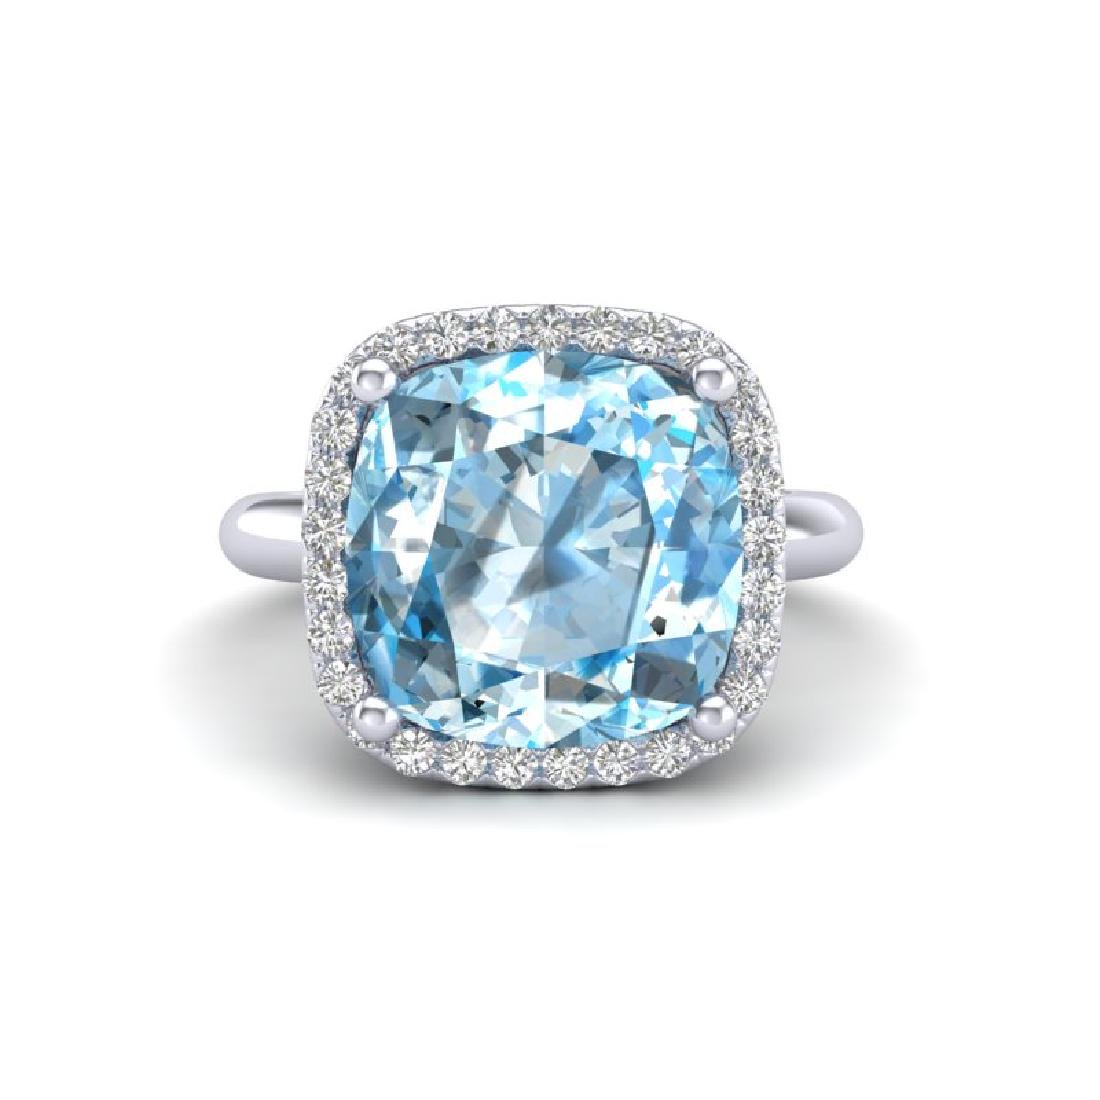 6 CTW Sky Blue Topaz & Micro Pave Halo VS/SI Diamond